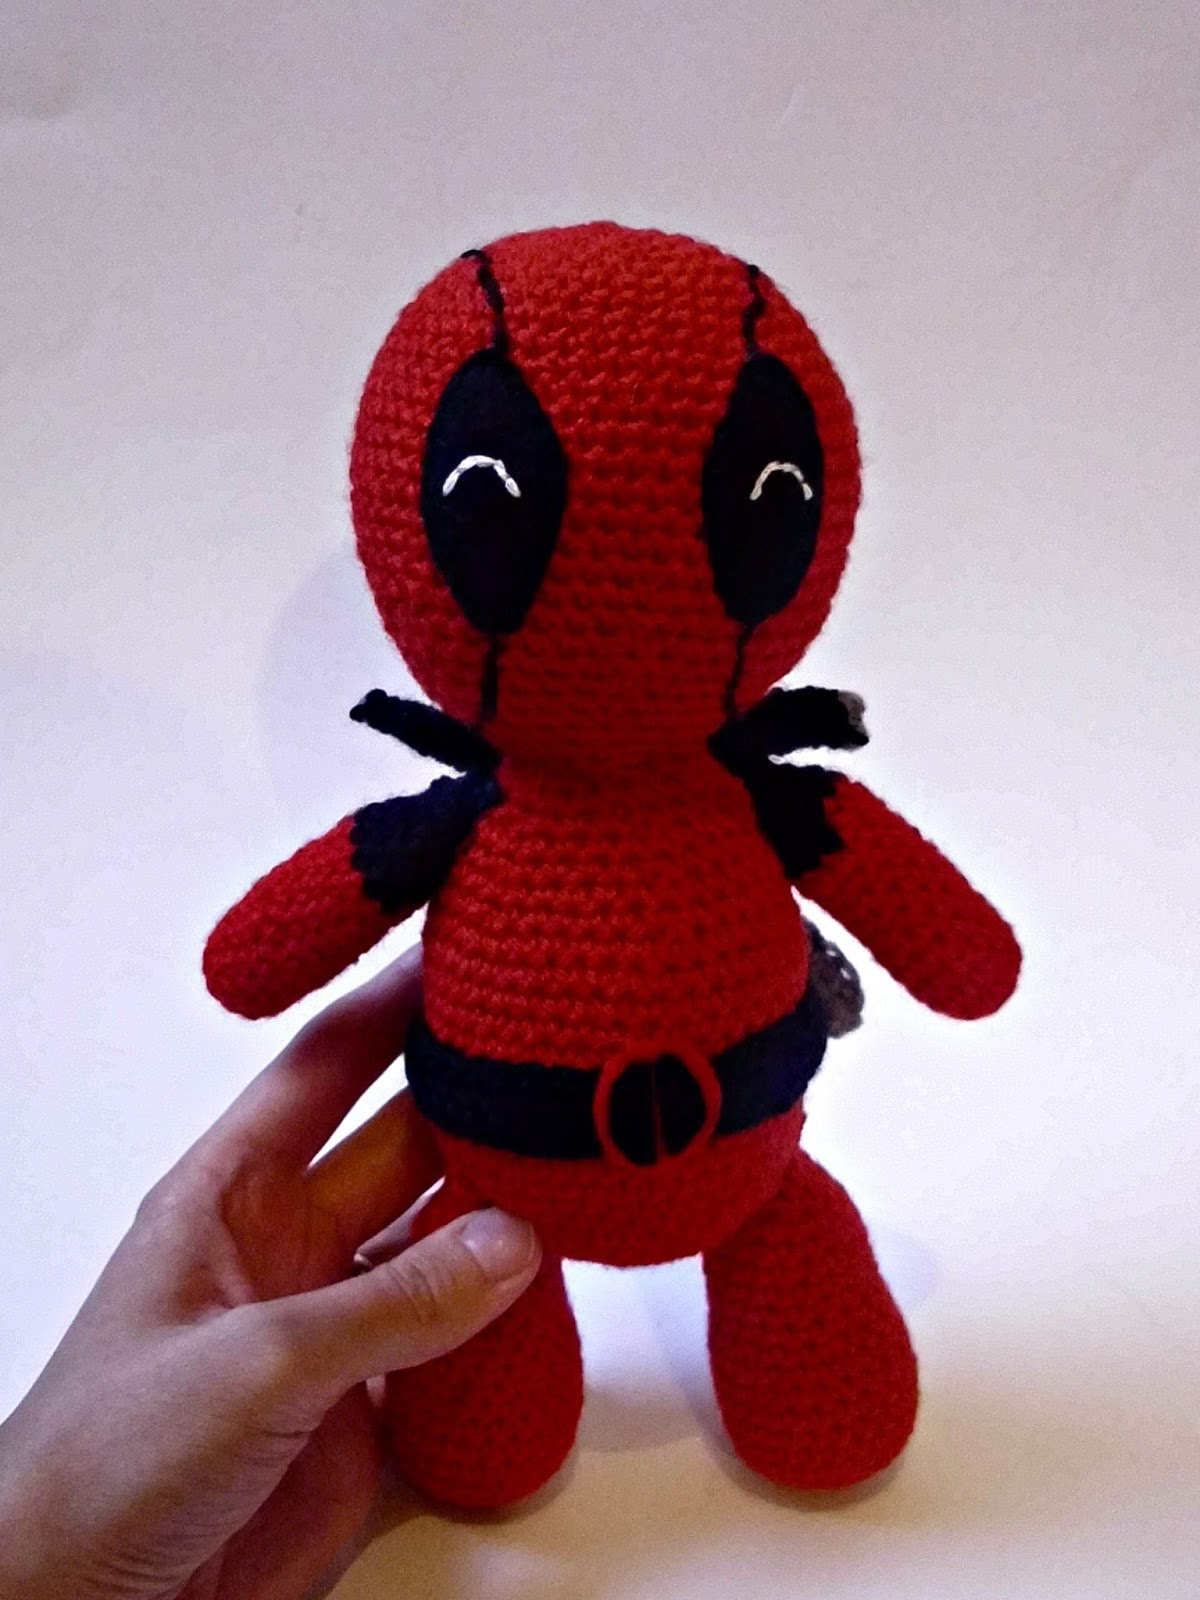 Deadpool Knitting Pattern : the geeky knitter: august crafting - update